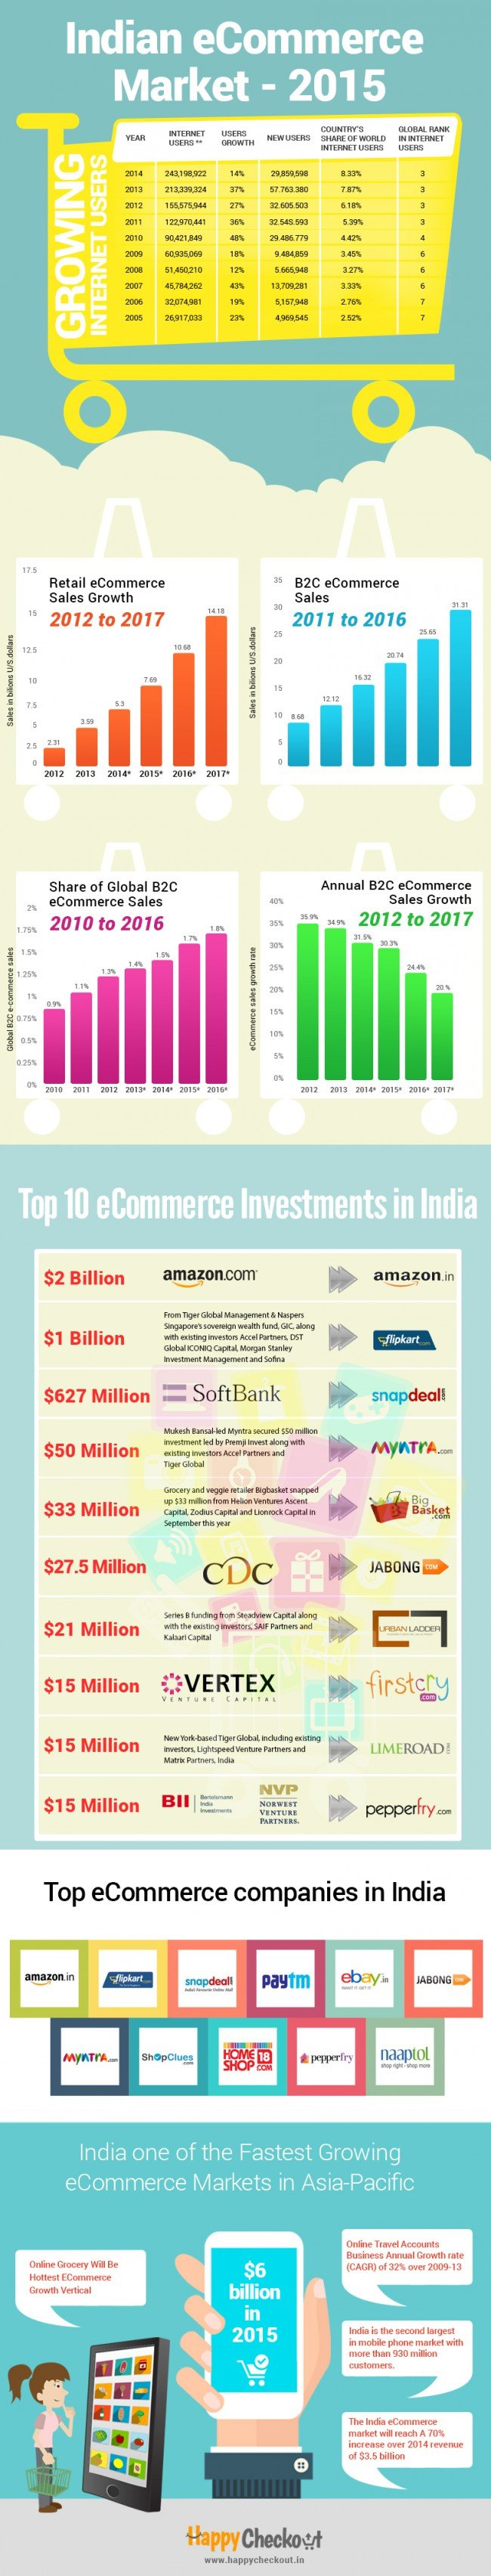 Indian Ecomm market 2015